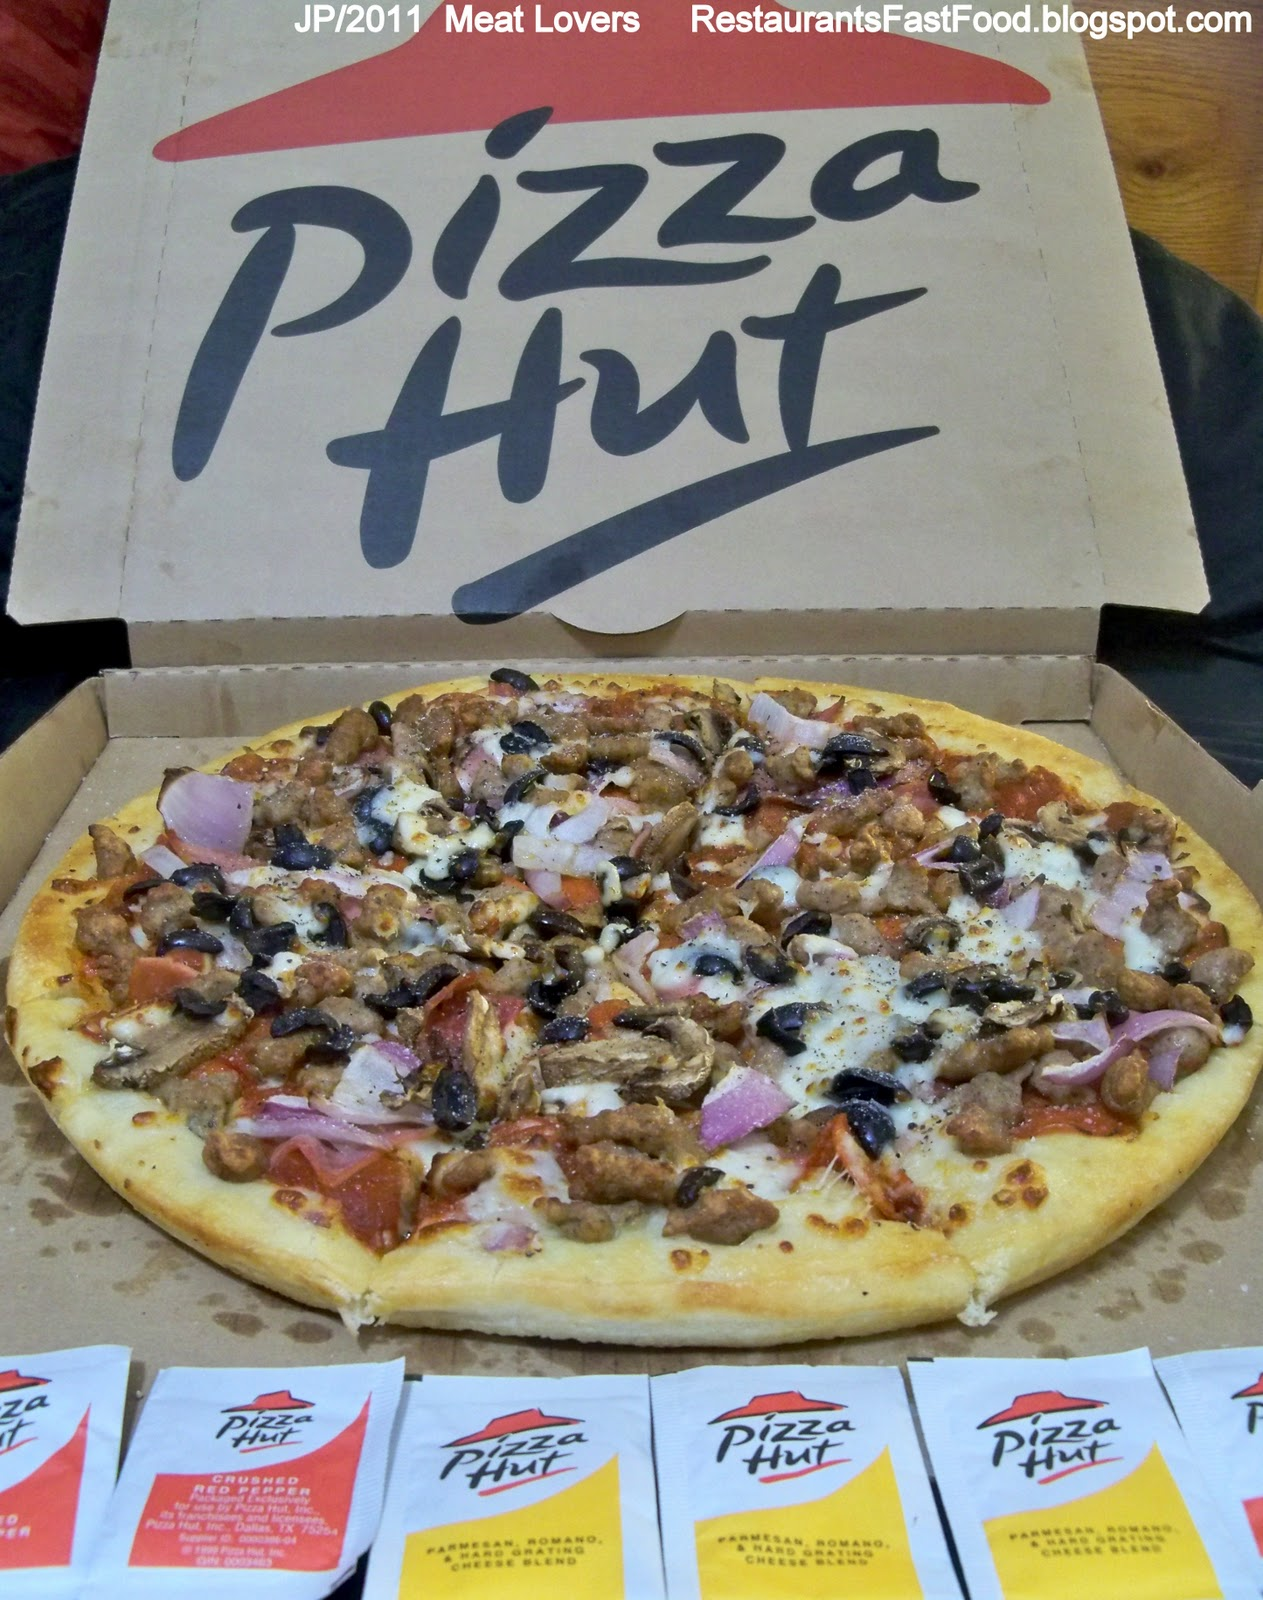 Pizza Hut Meat Large 13 Inch 2lb 11oz Pie With Added Onion Mushrooms Black Olives Restaurant Pan